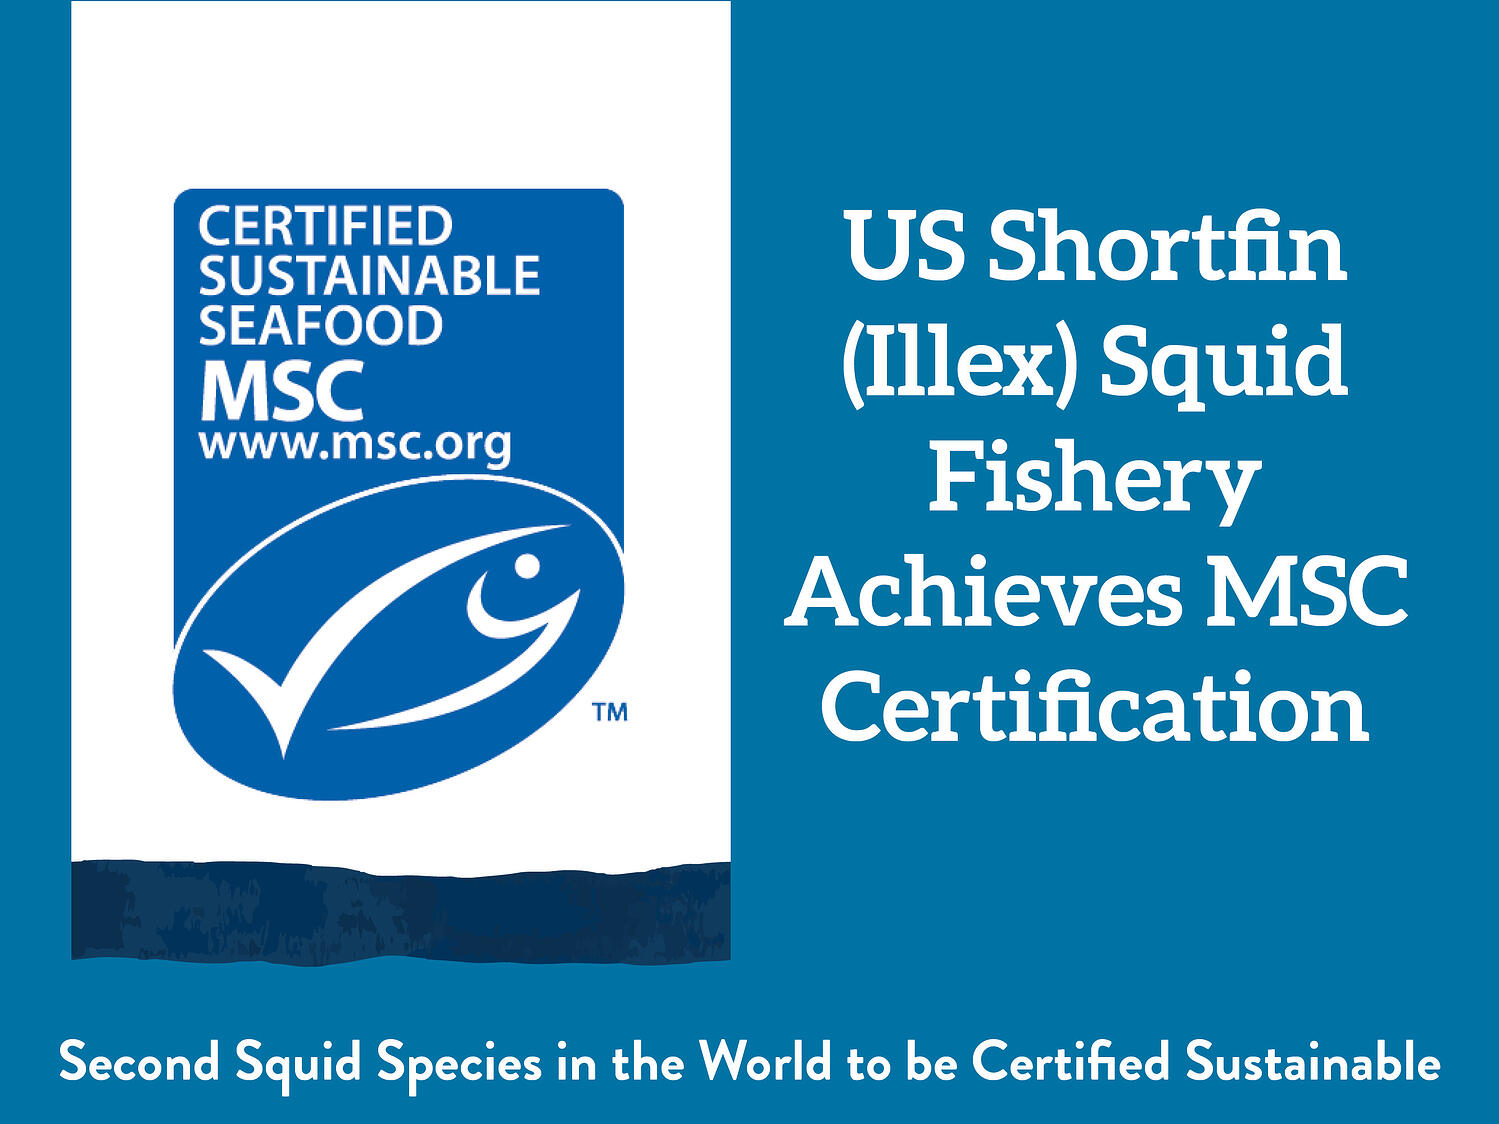 US Shortfin (Illex) Squid Fishery Achieves MSC Certification